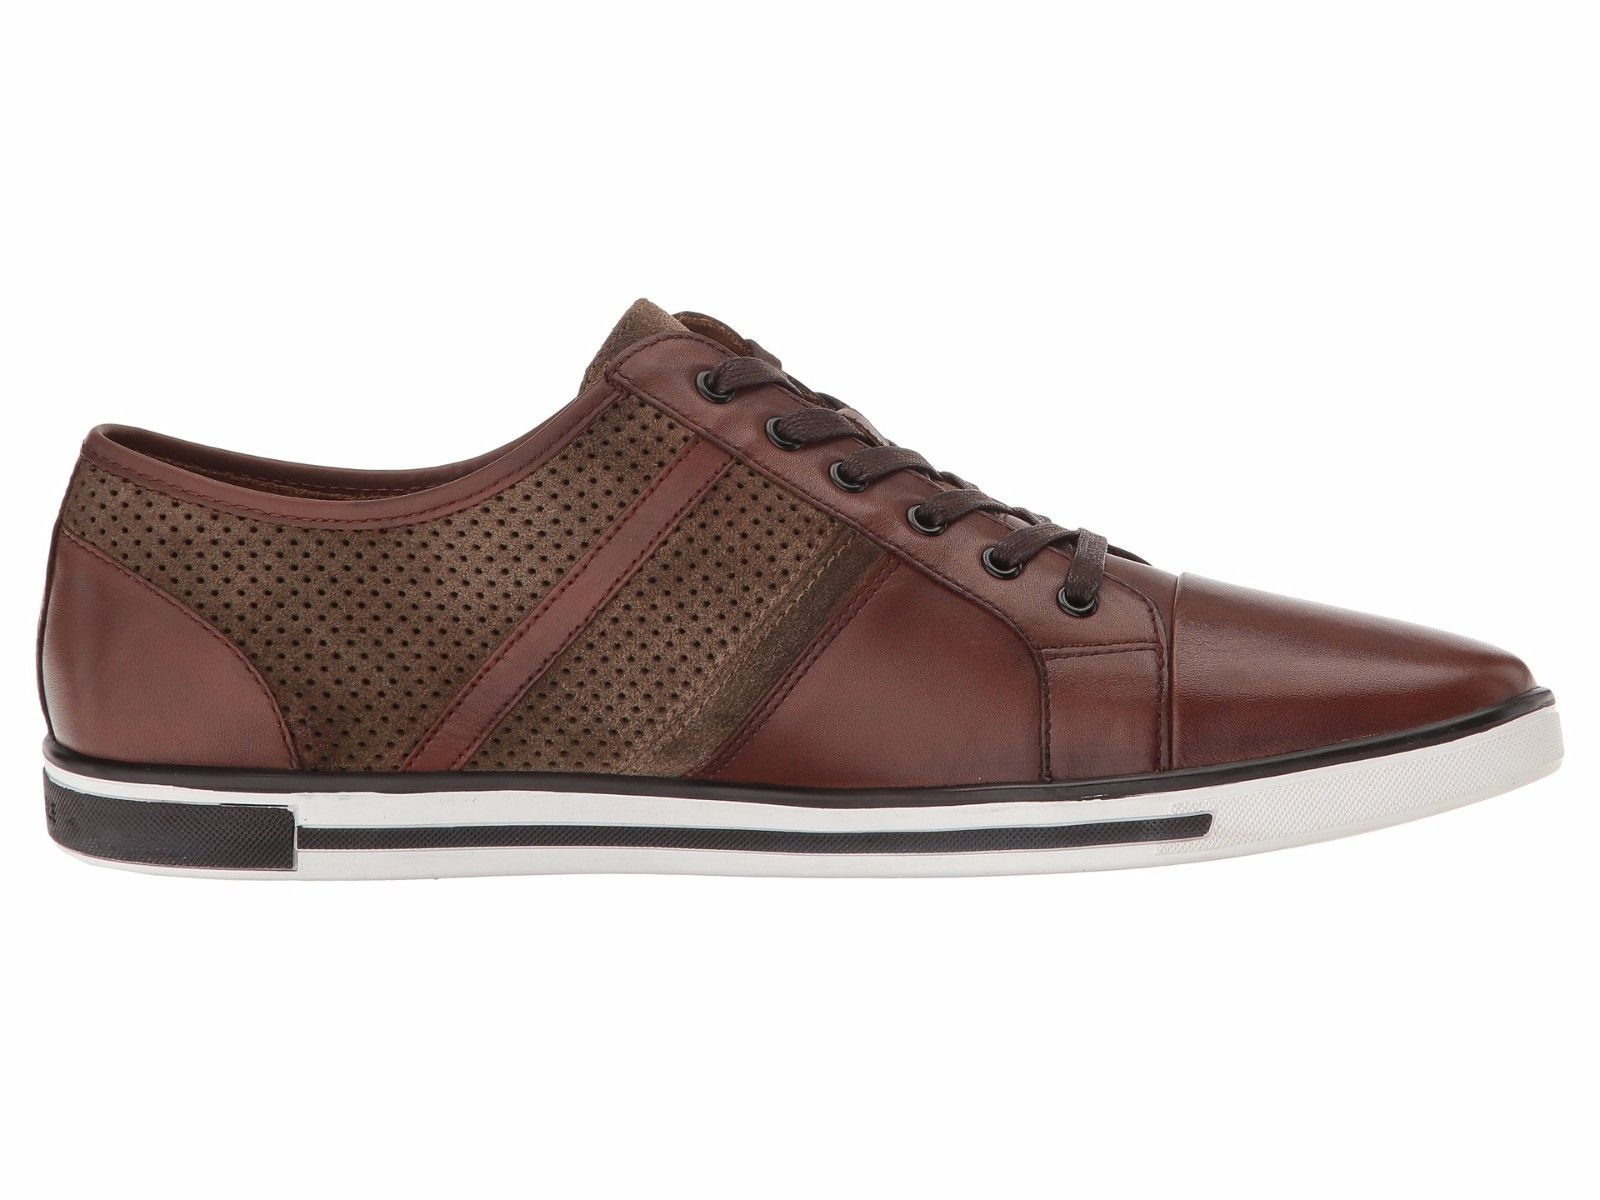 Kenneth Cole Initial Step -Brown